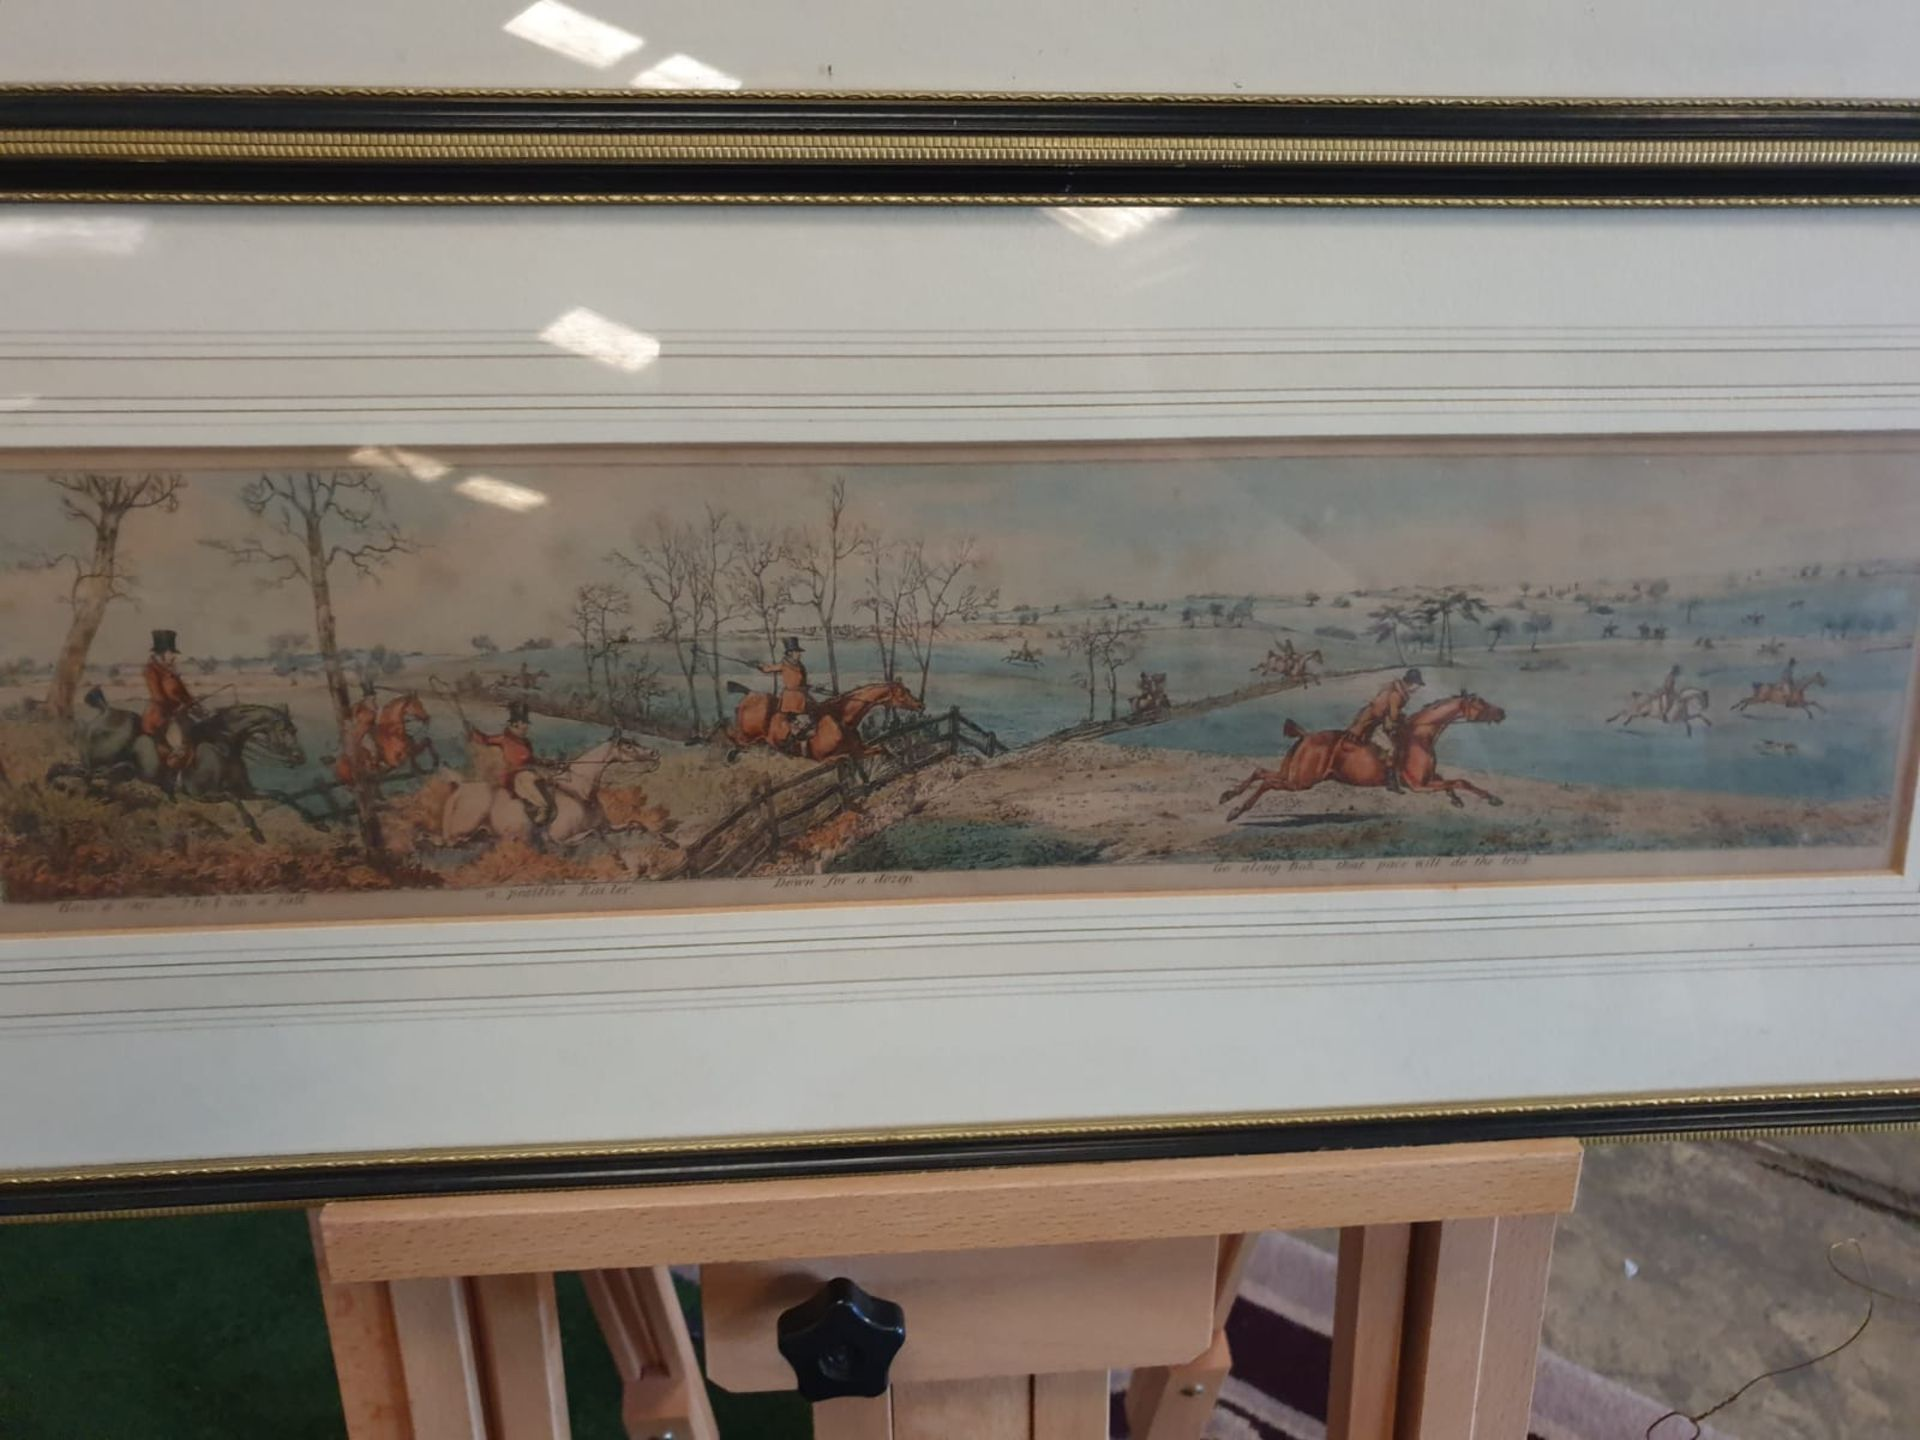 A set of 3 framed coloured panorma Hunters prints titled Lets take the road, Excersive polite, A - Image 6 of 6